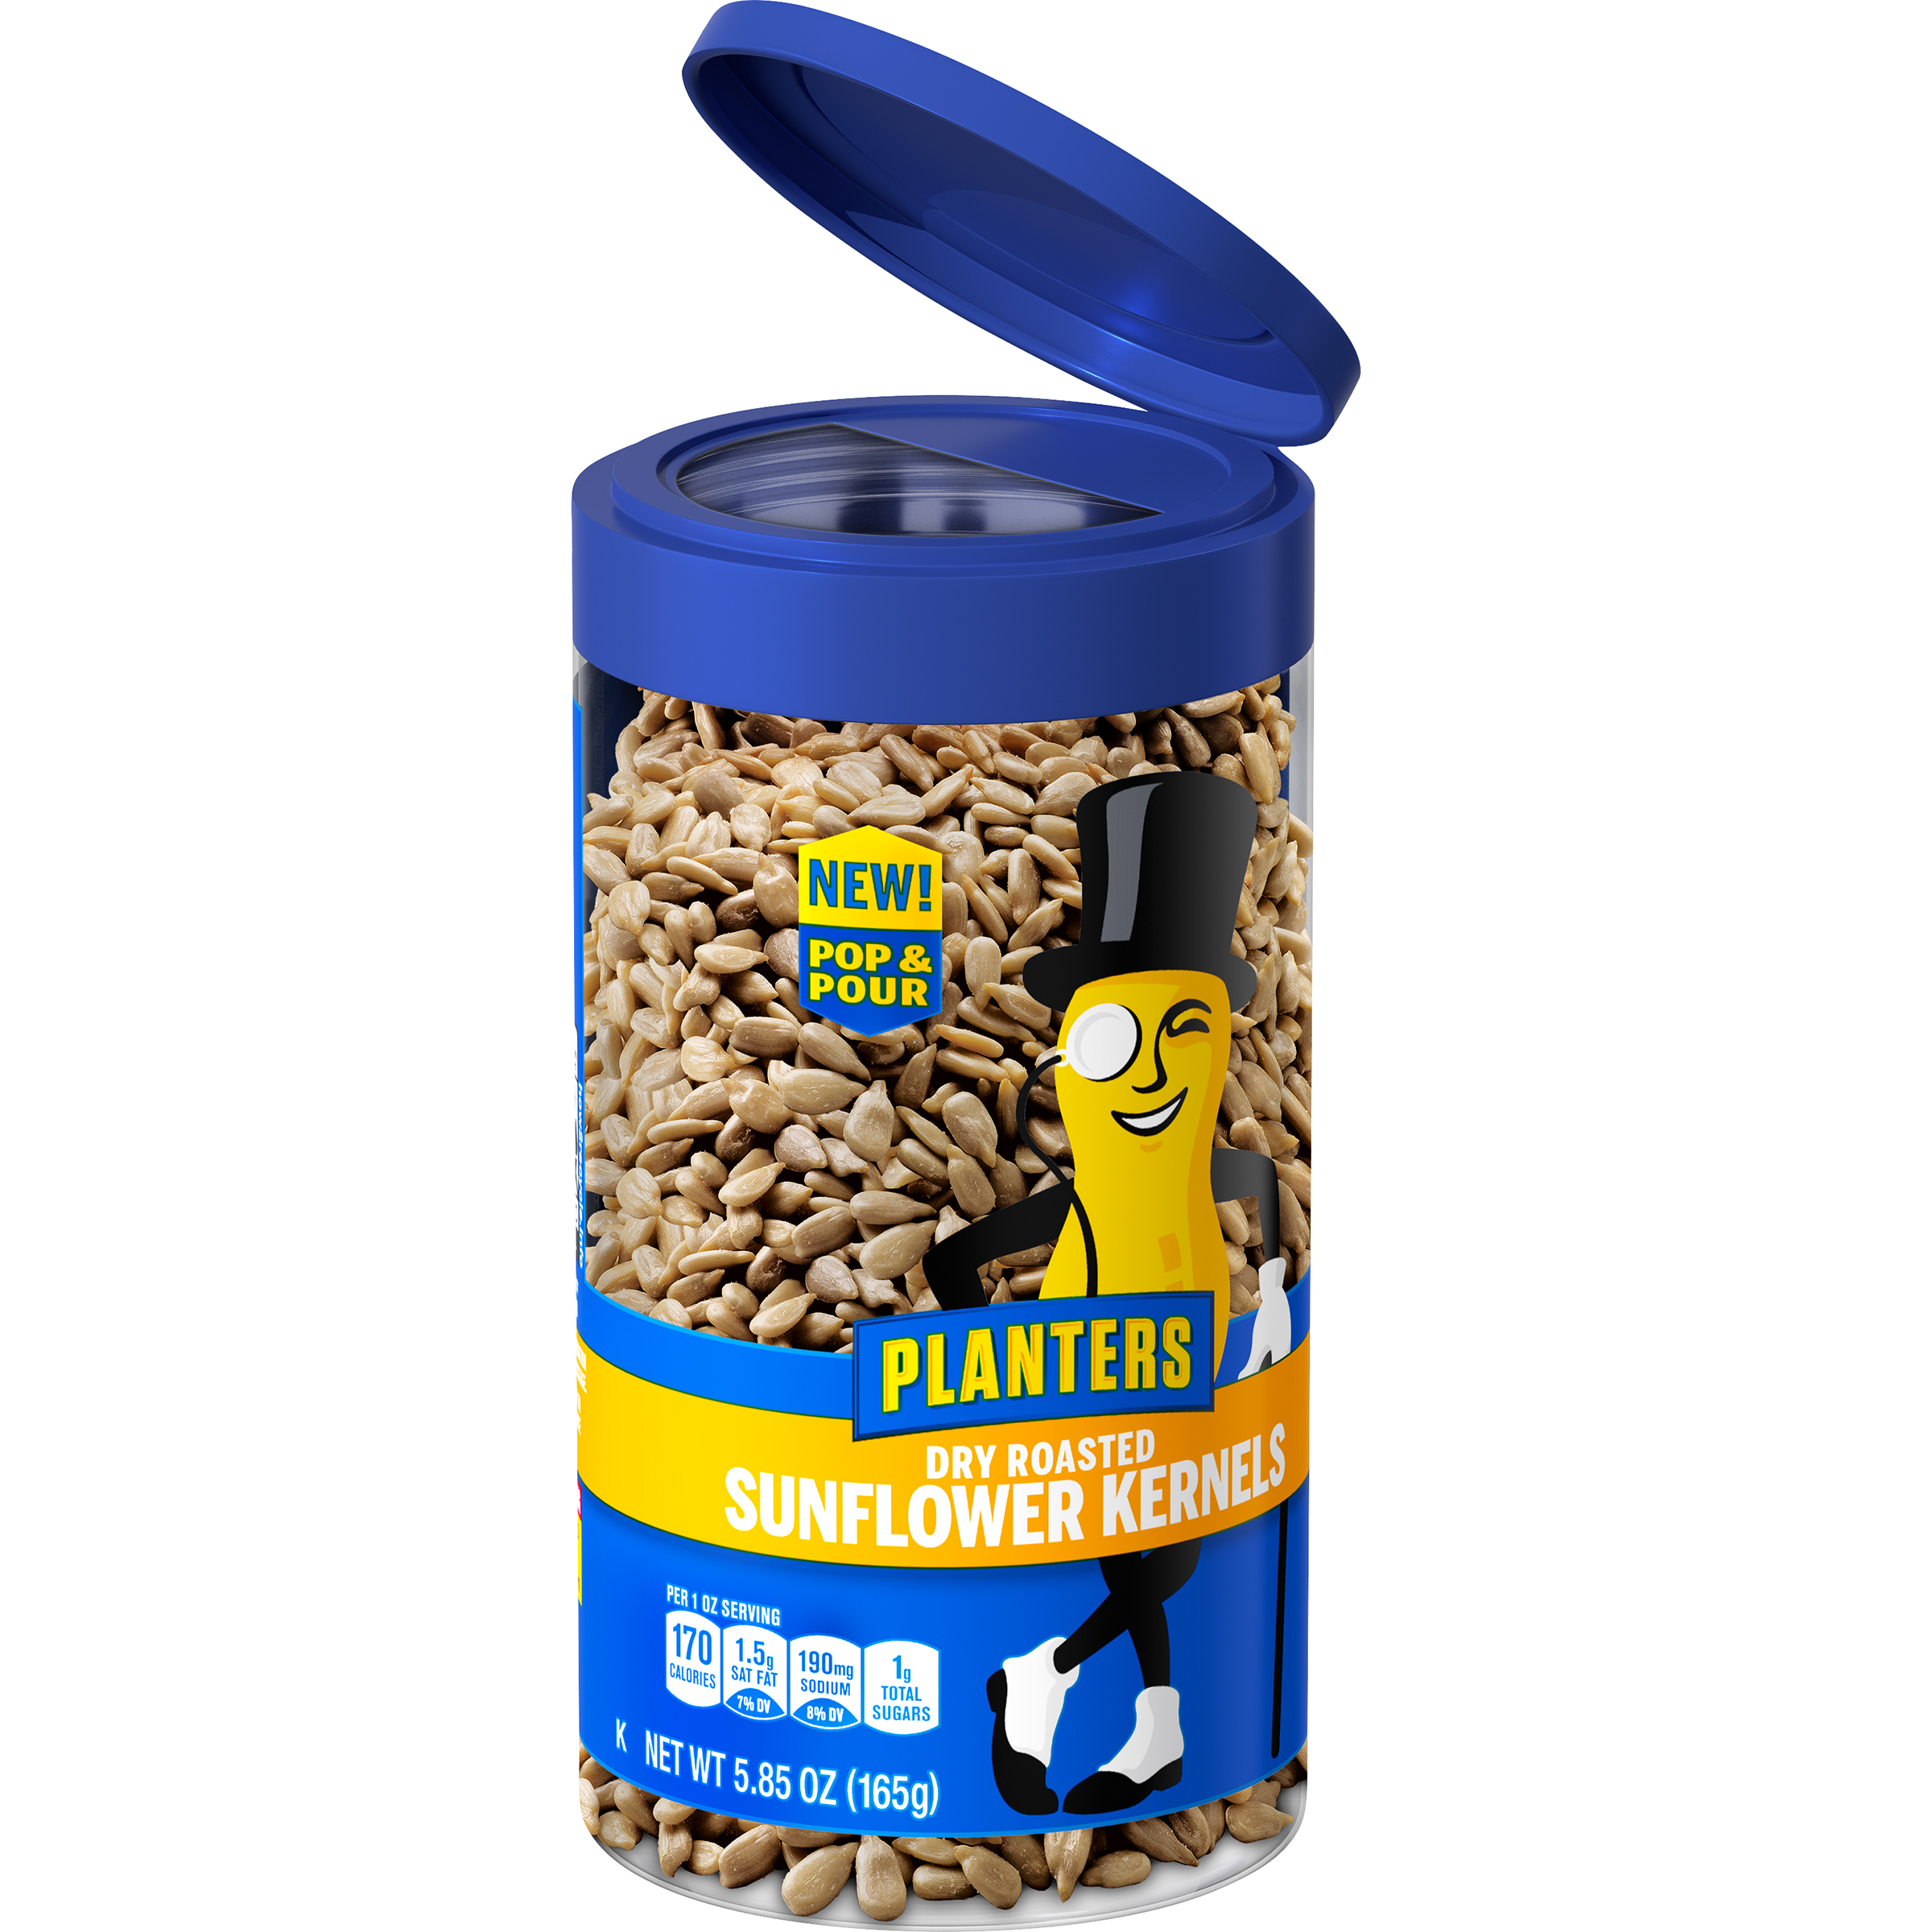 Planters Dry Roasted Sunflower Kernels 5.85 oz Jar image